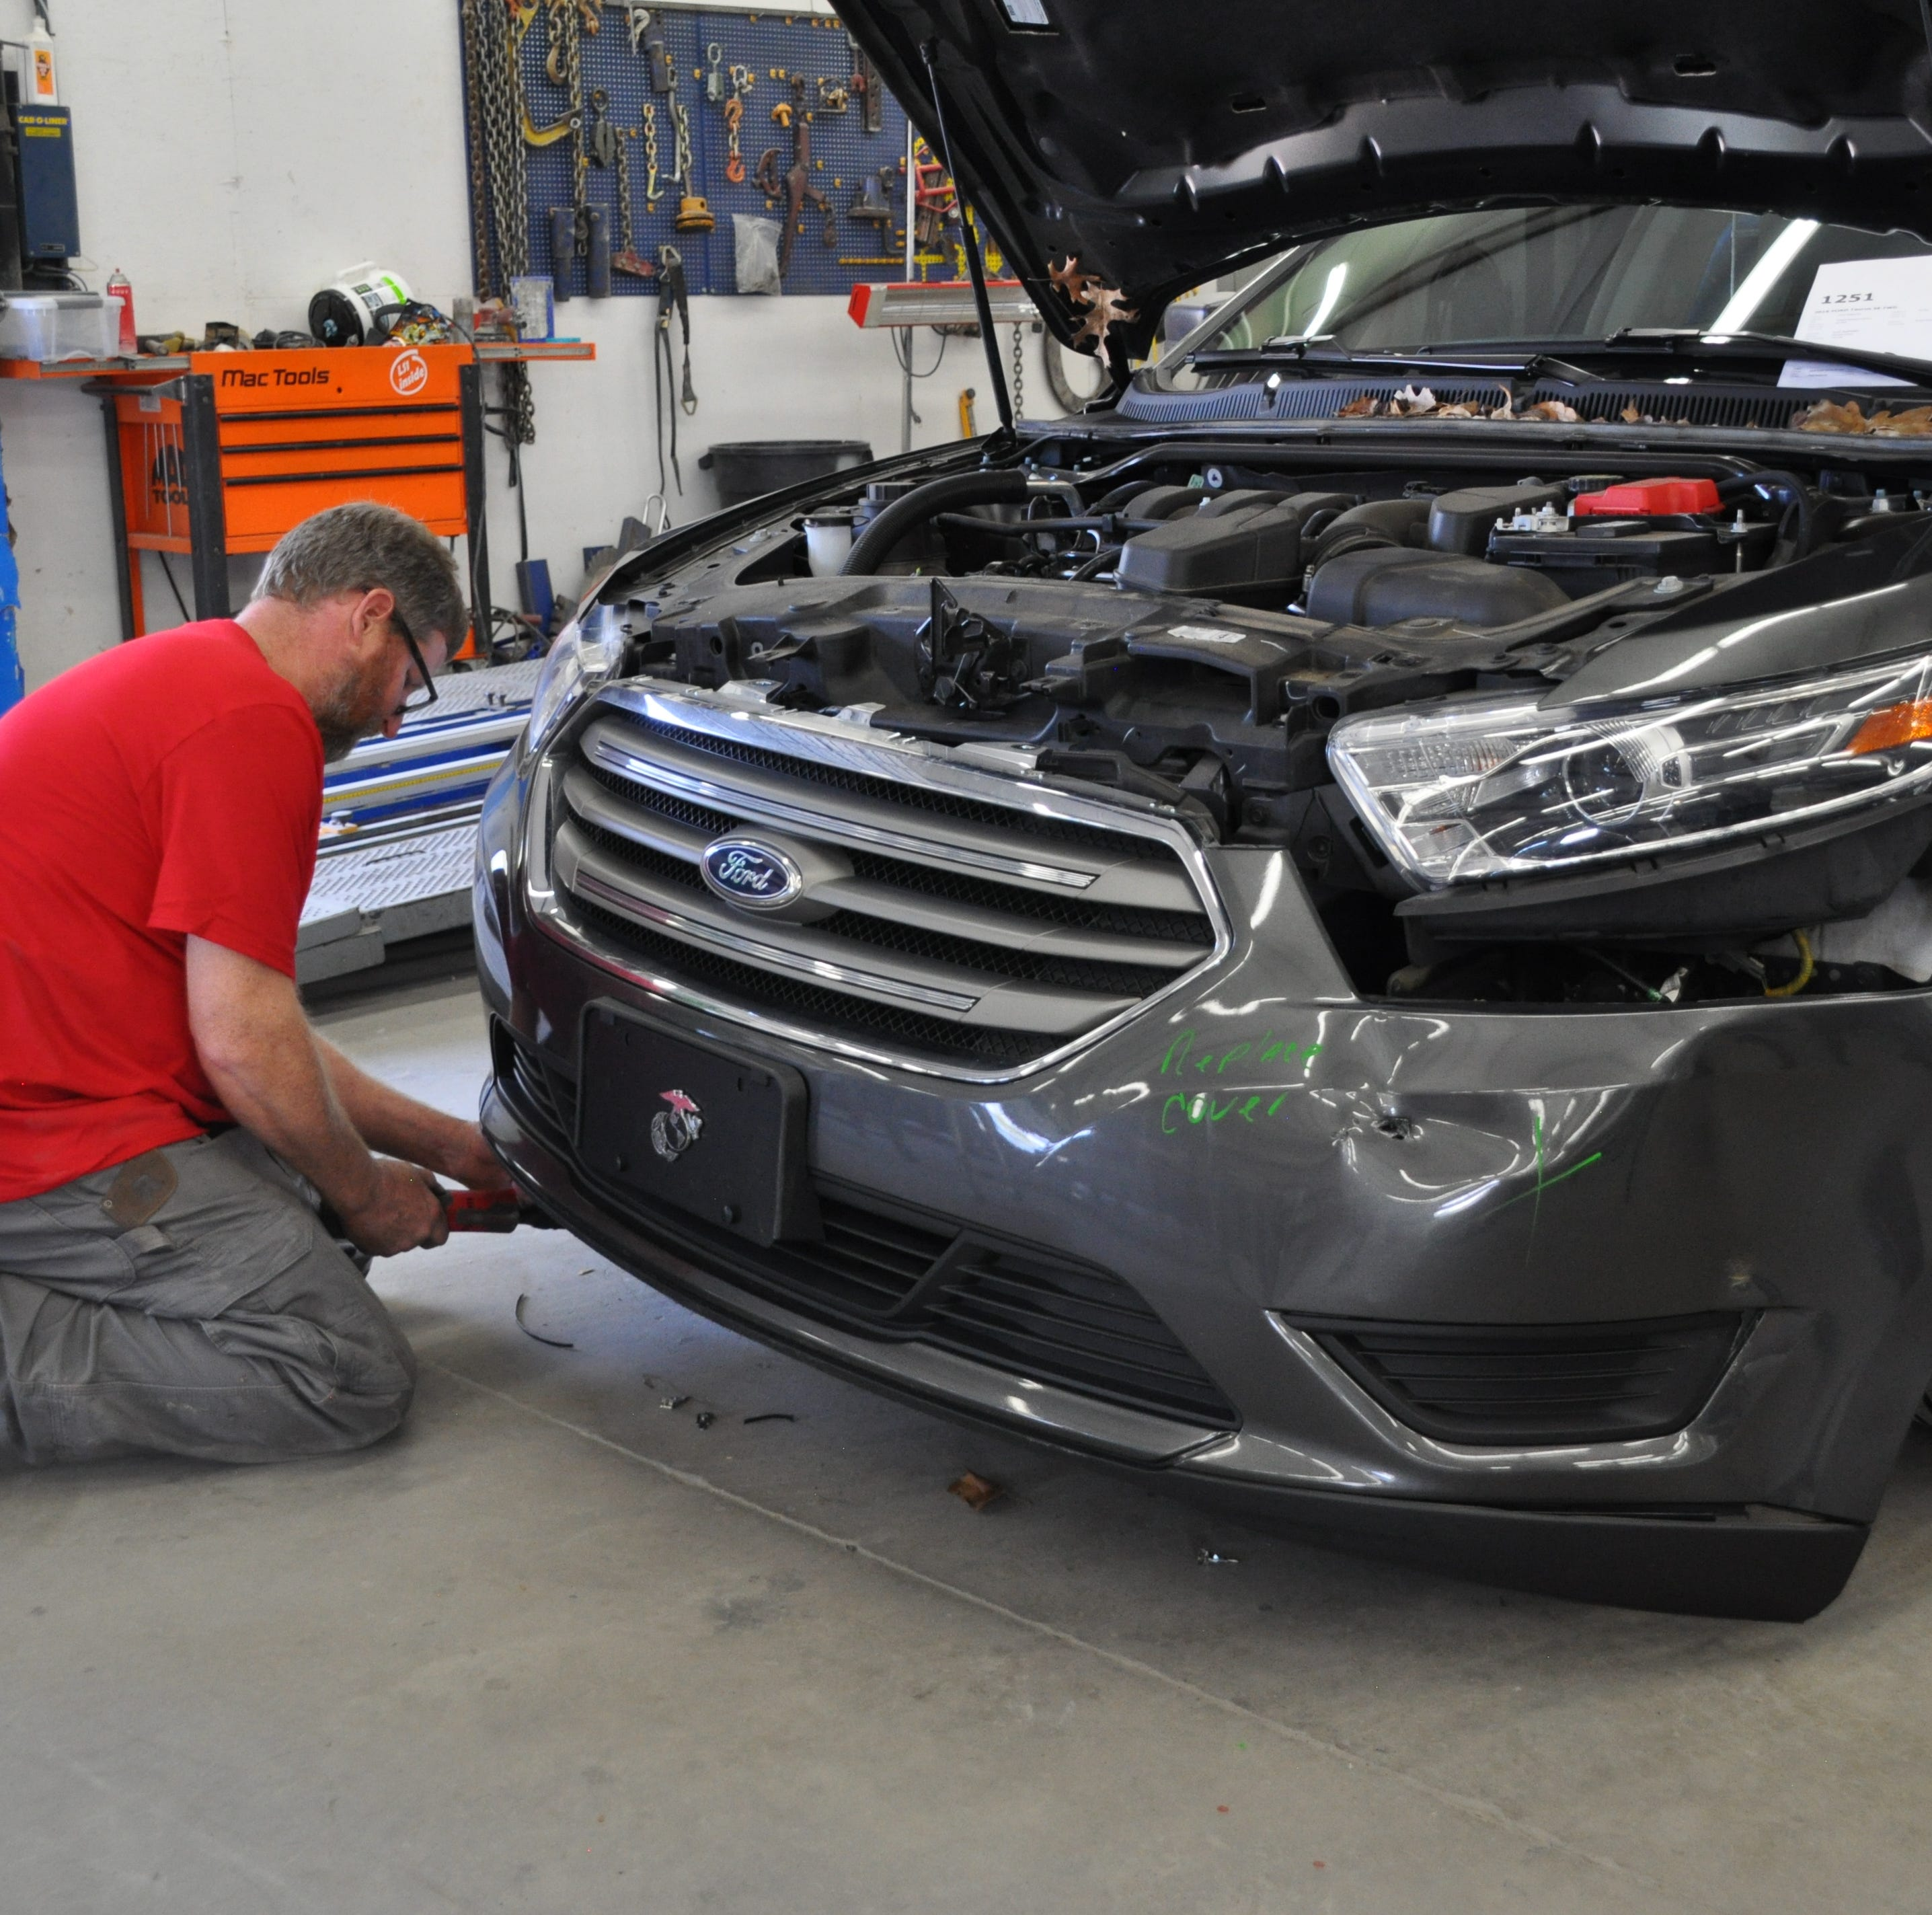 A repair technician removes a car's front bumper assembly, which houses numerous sensors to support safe driving technology, during a repair at Carstar Lexington Collision in Lexington, S.C.